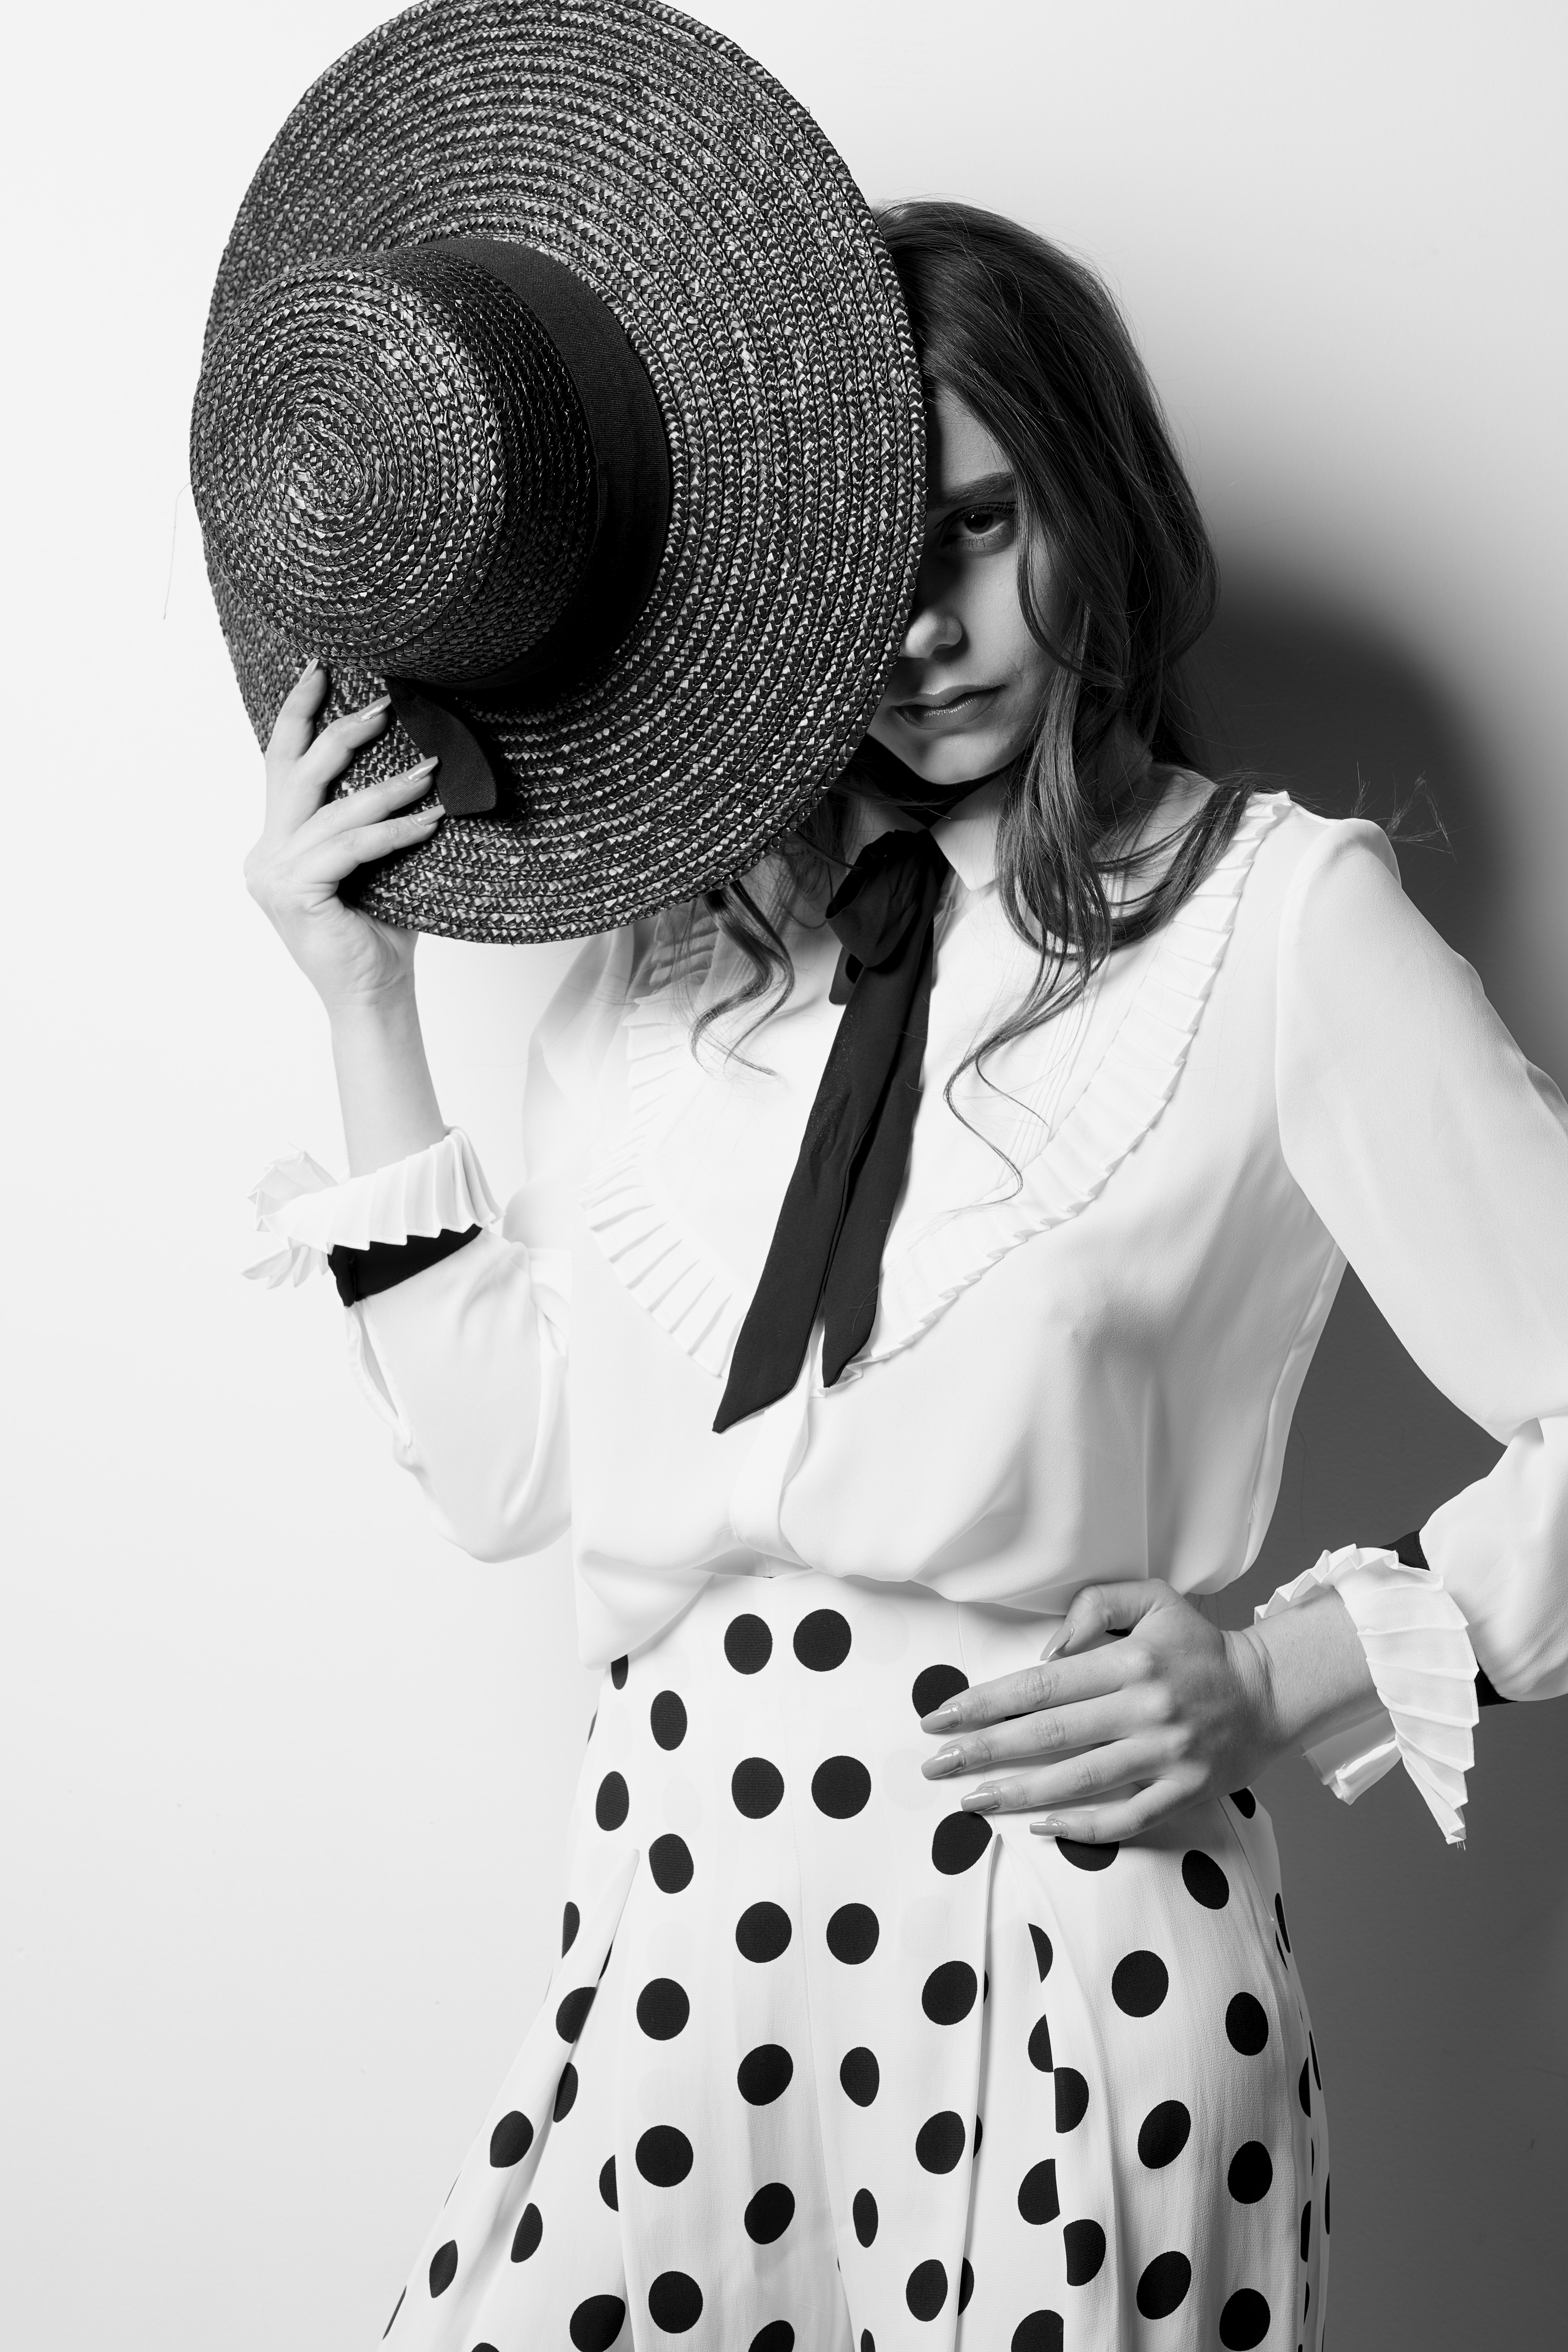 grayscale photo of woman holding hat